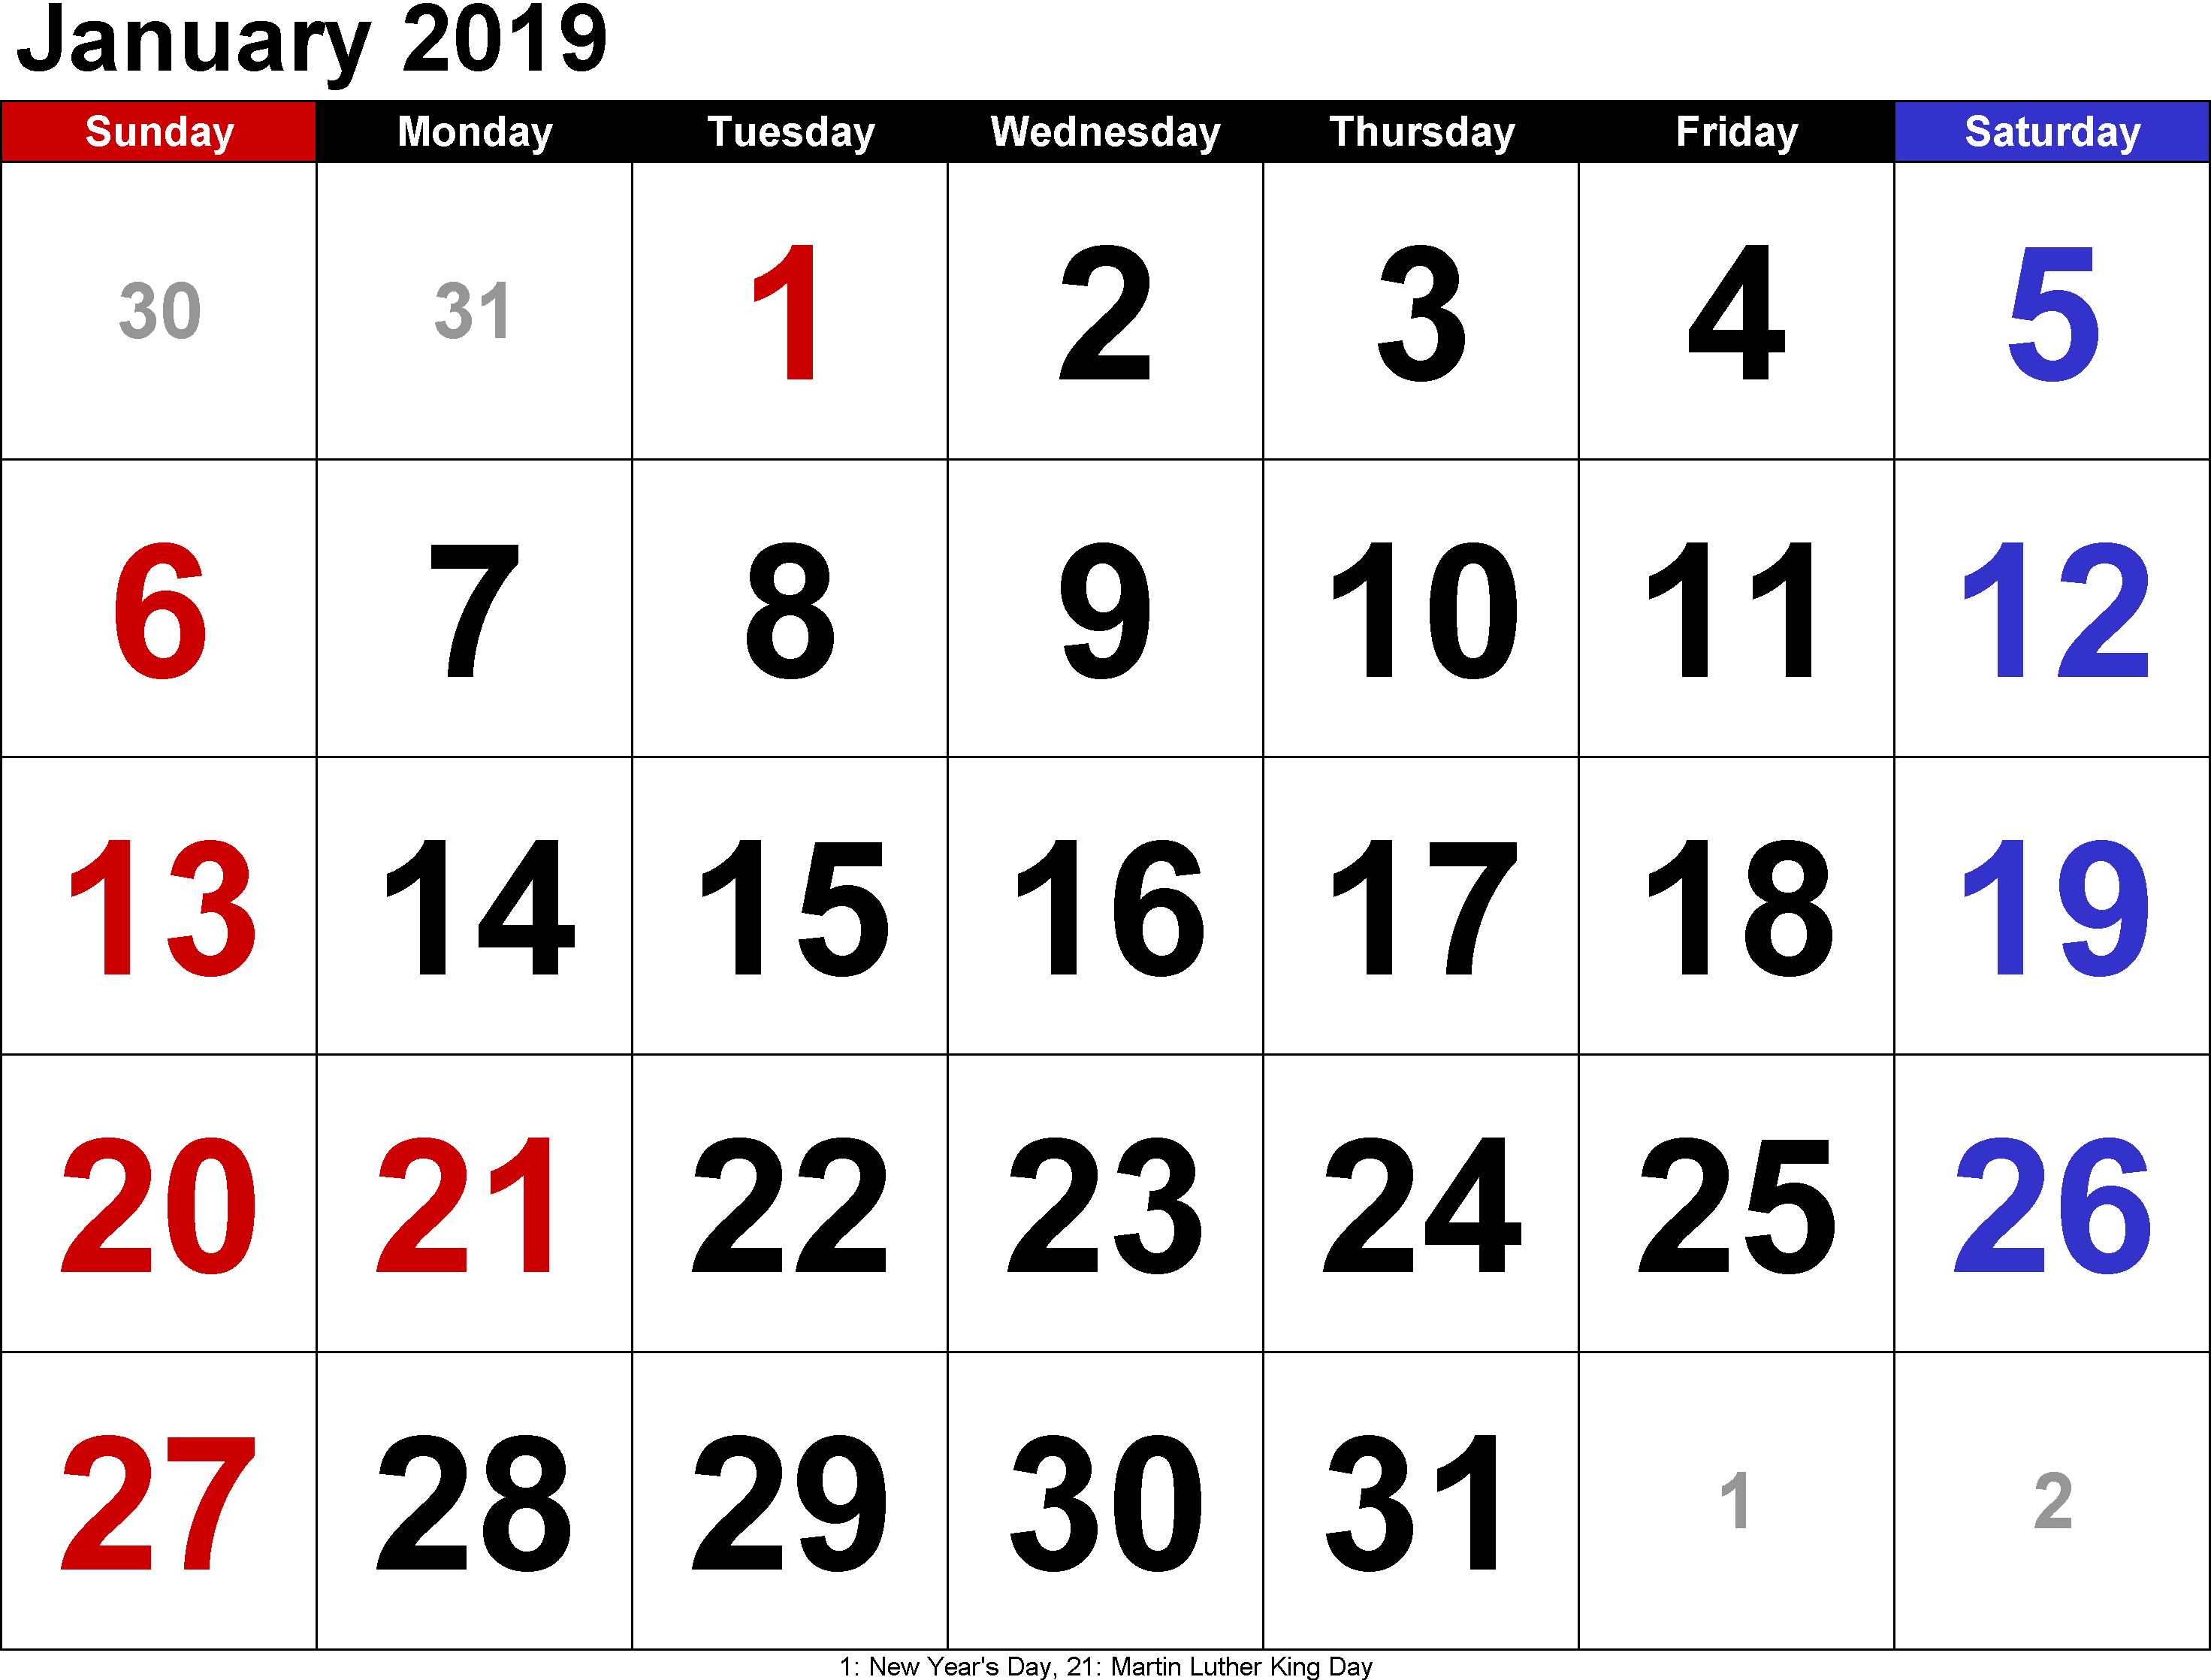 Tamil New Year 2019 Calendar With January Printable Free Templates